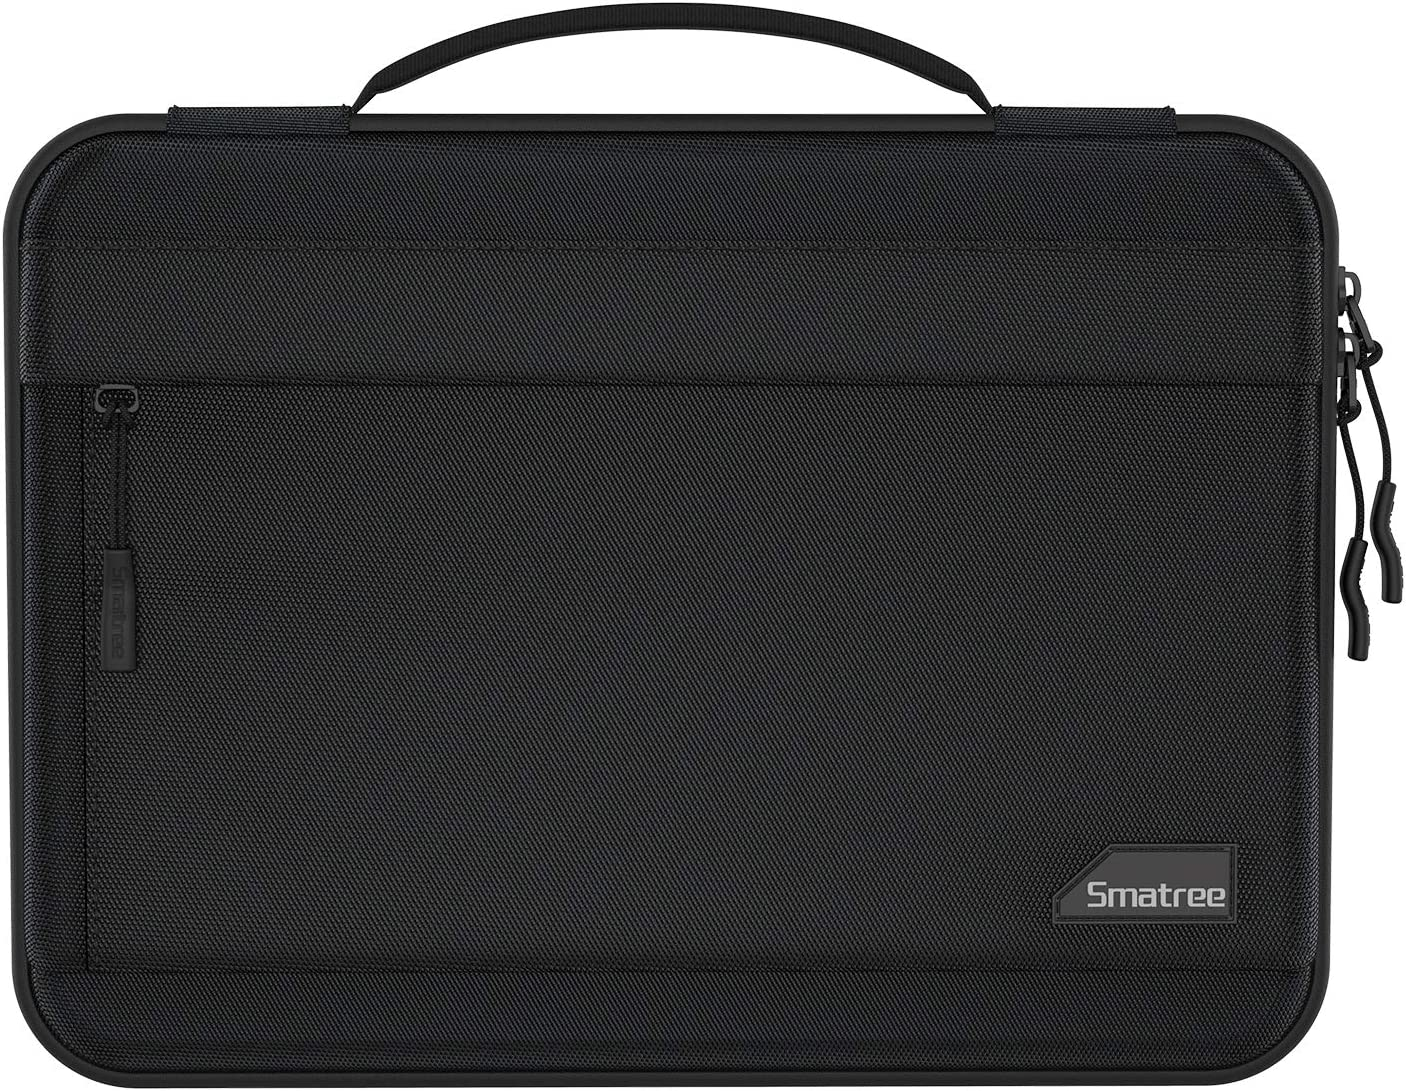 Smatree Protective Laptop Sleeve Bag, 14 Inch Laptop Carrying Case with Accessory Pocket Compatible with HP Pavilion/EliteBook 840 G3, Lenovo ThinkPad E480, Yoga 920, Asus Vivobook A420